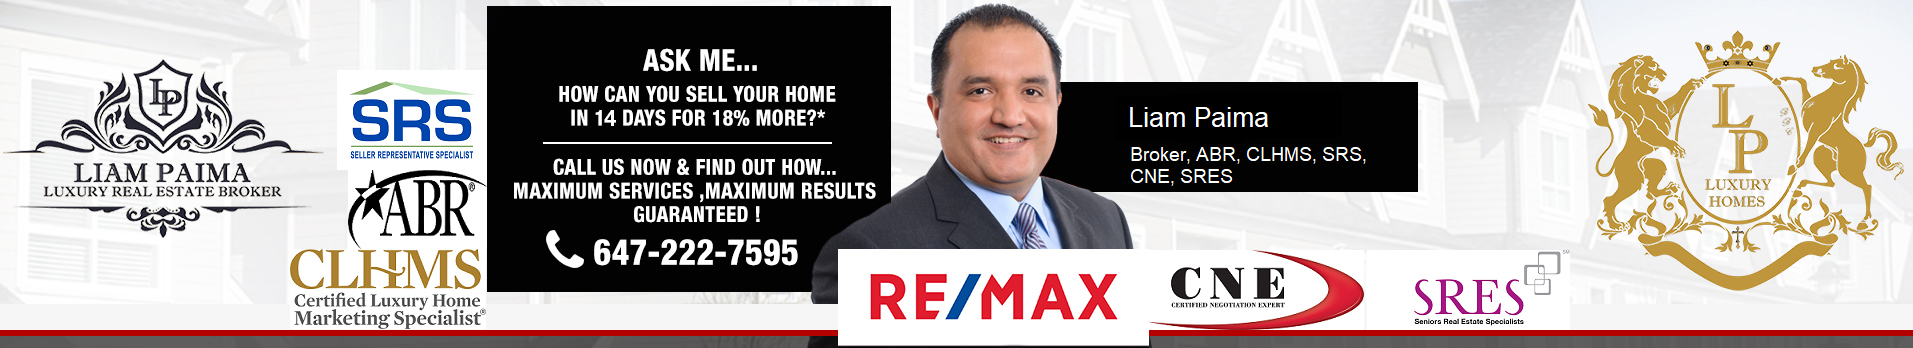 #1 Low Commission Real Estate Agent With Best Low Real Estate Commission Service In Toronto, Vaughan, Kleinburg, Oakville, Richmond Hill, Missiaauga, Brampton, Milton, Caledon, Georgetown, Burlington, Orangeville, Markham.